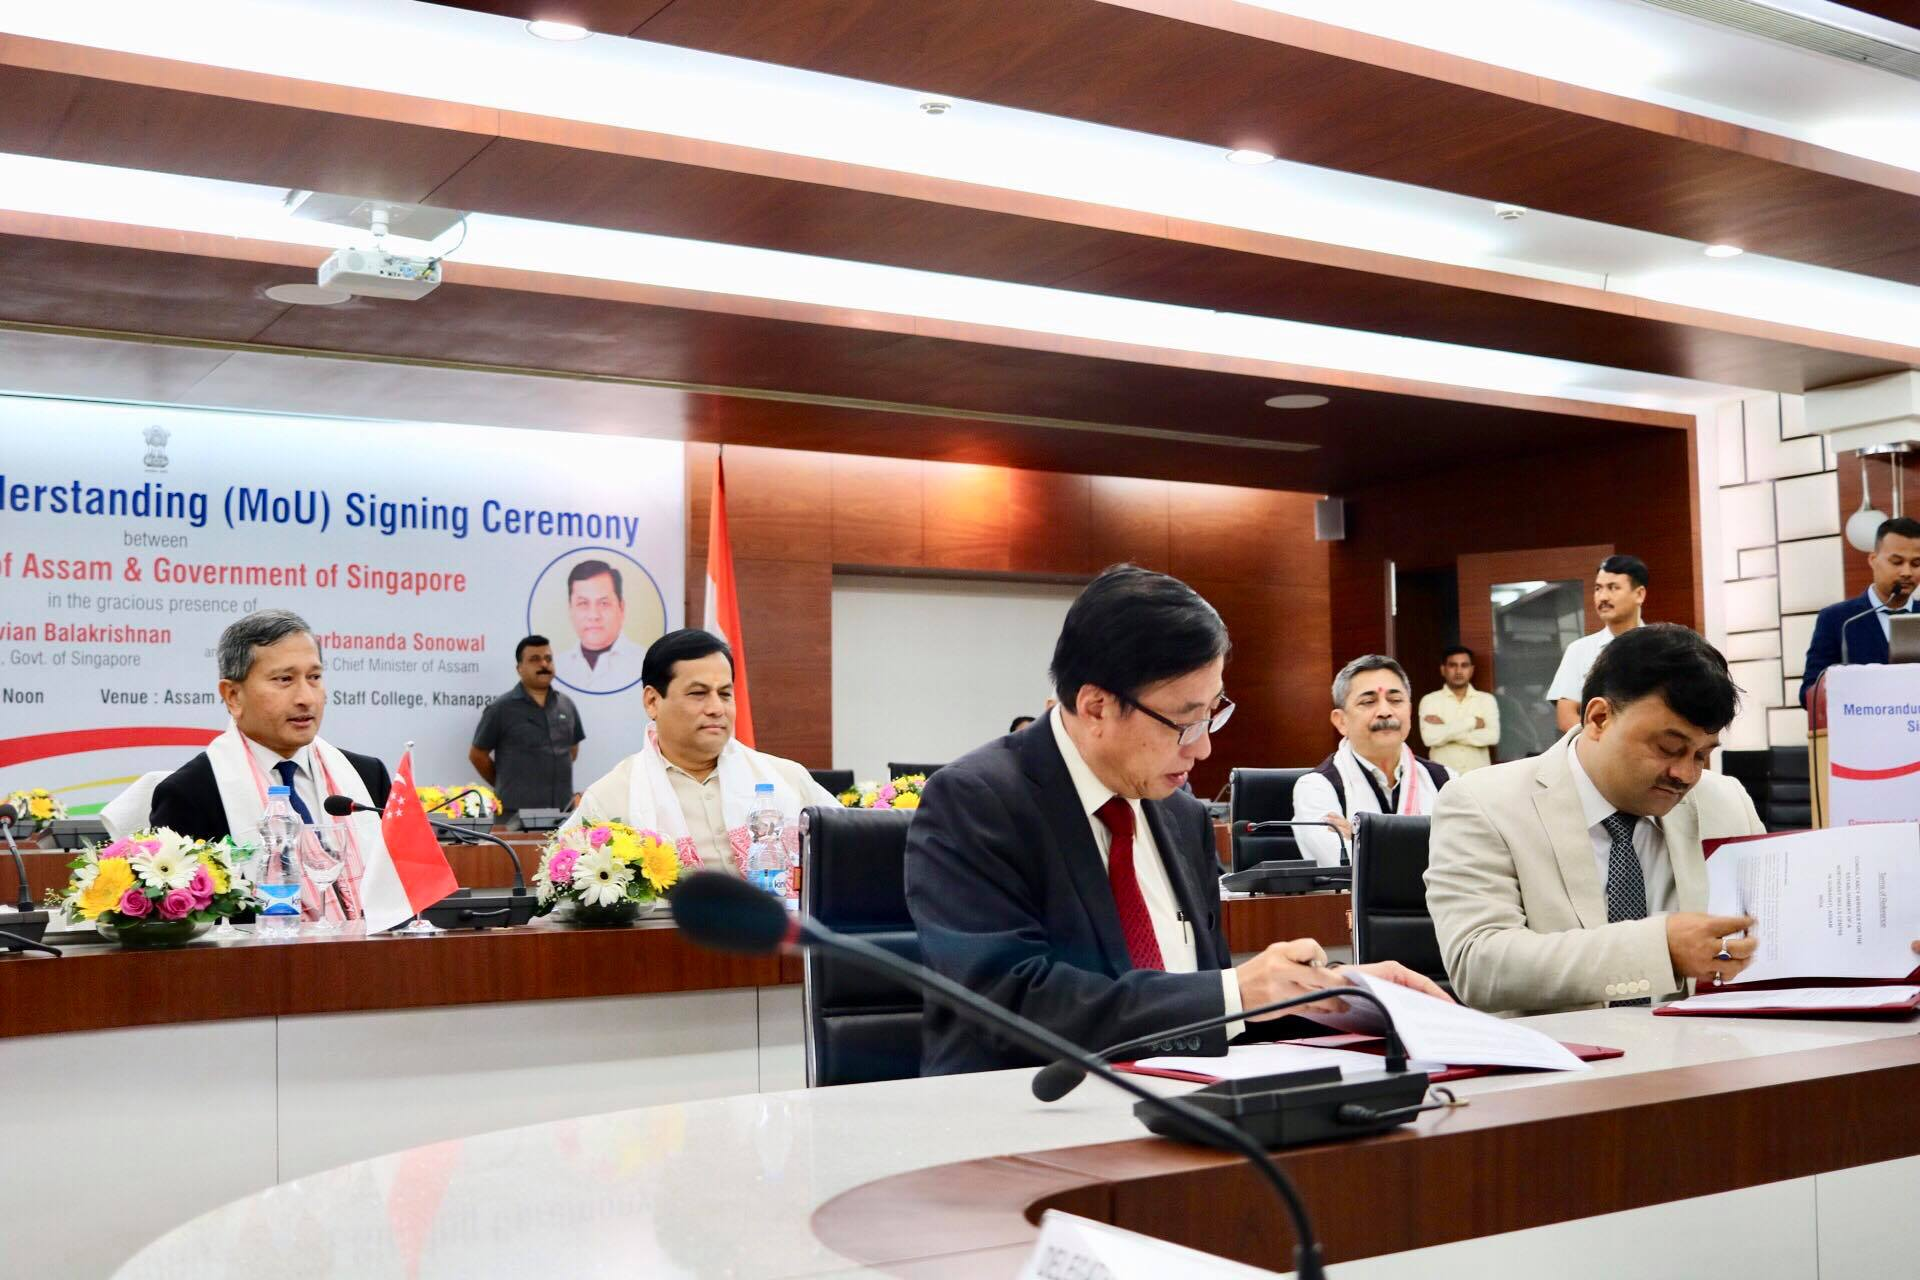 Singapore Minister for Foreign Affairs Dr Vivian Balakrishnan looks on the signing of Terms of Reference on the North East Skills Centre by ITE Education Services CEO Bruce Poh and Assam Skills Development Mission Director Anand Prakash Tiwari.